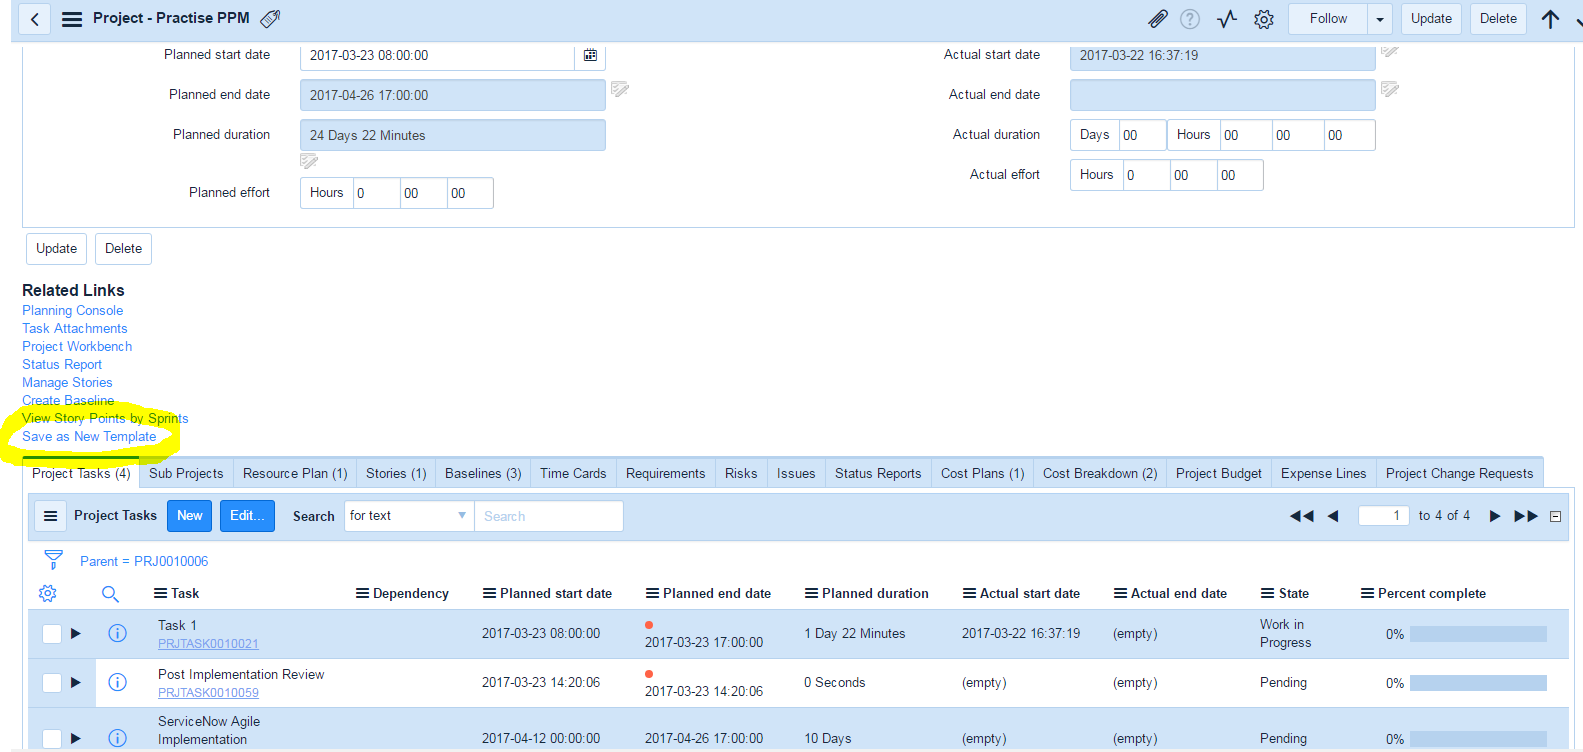 Project Tasks Template from community.servicenow.com